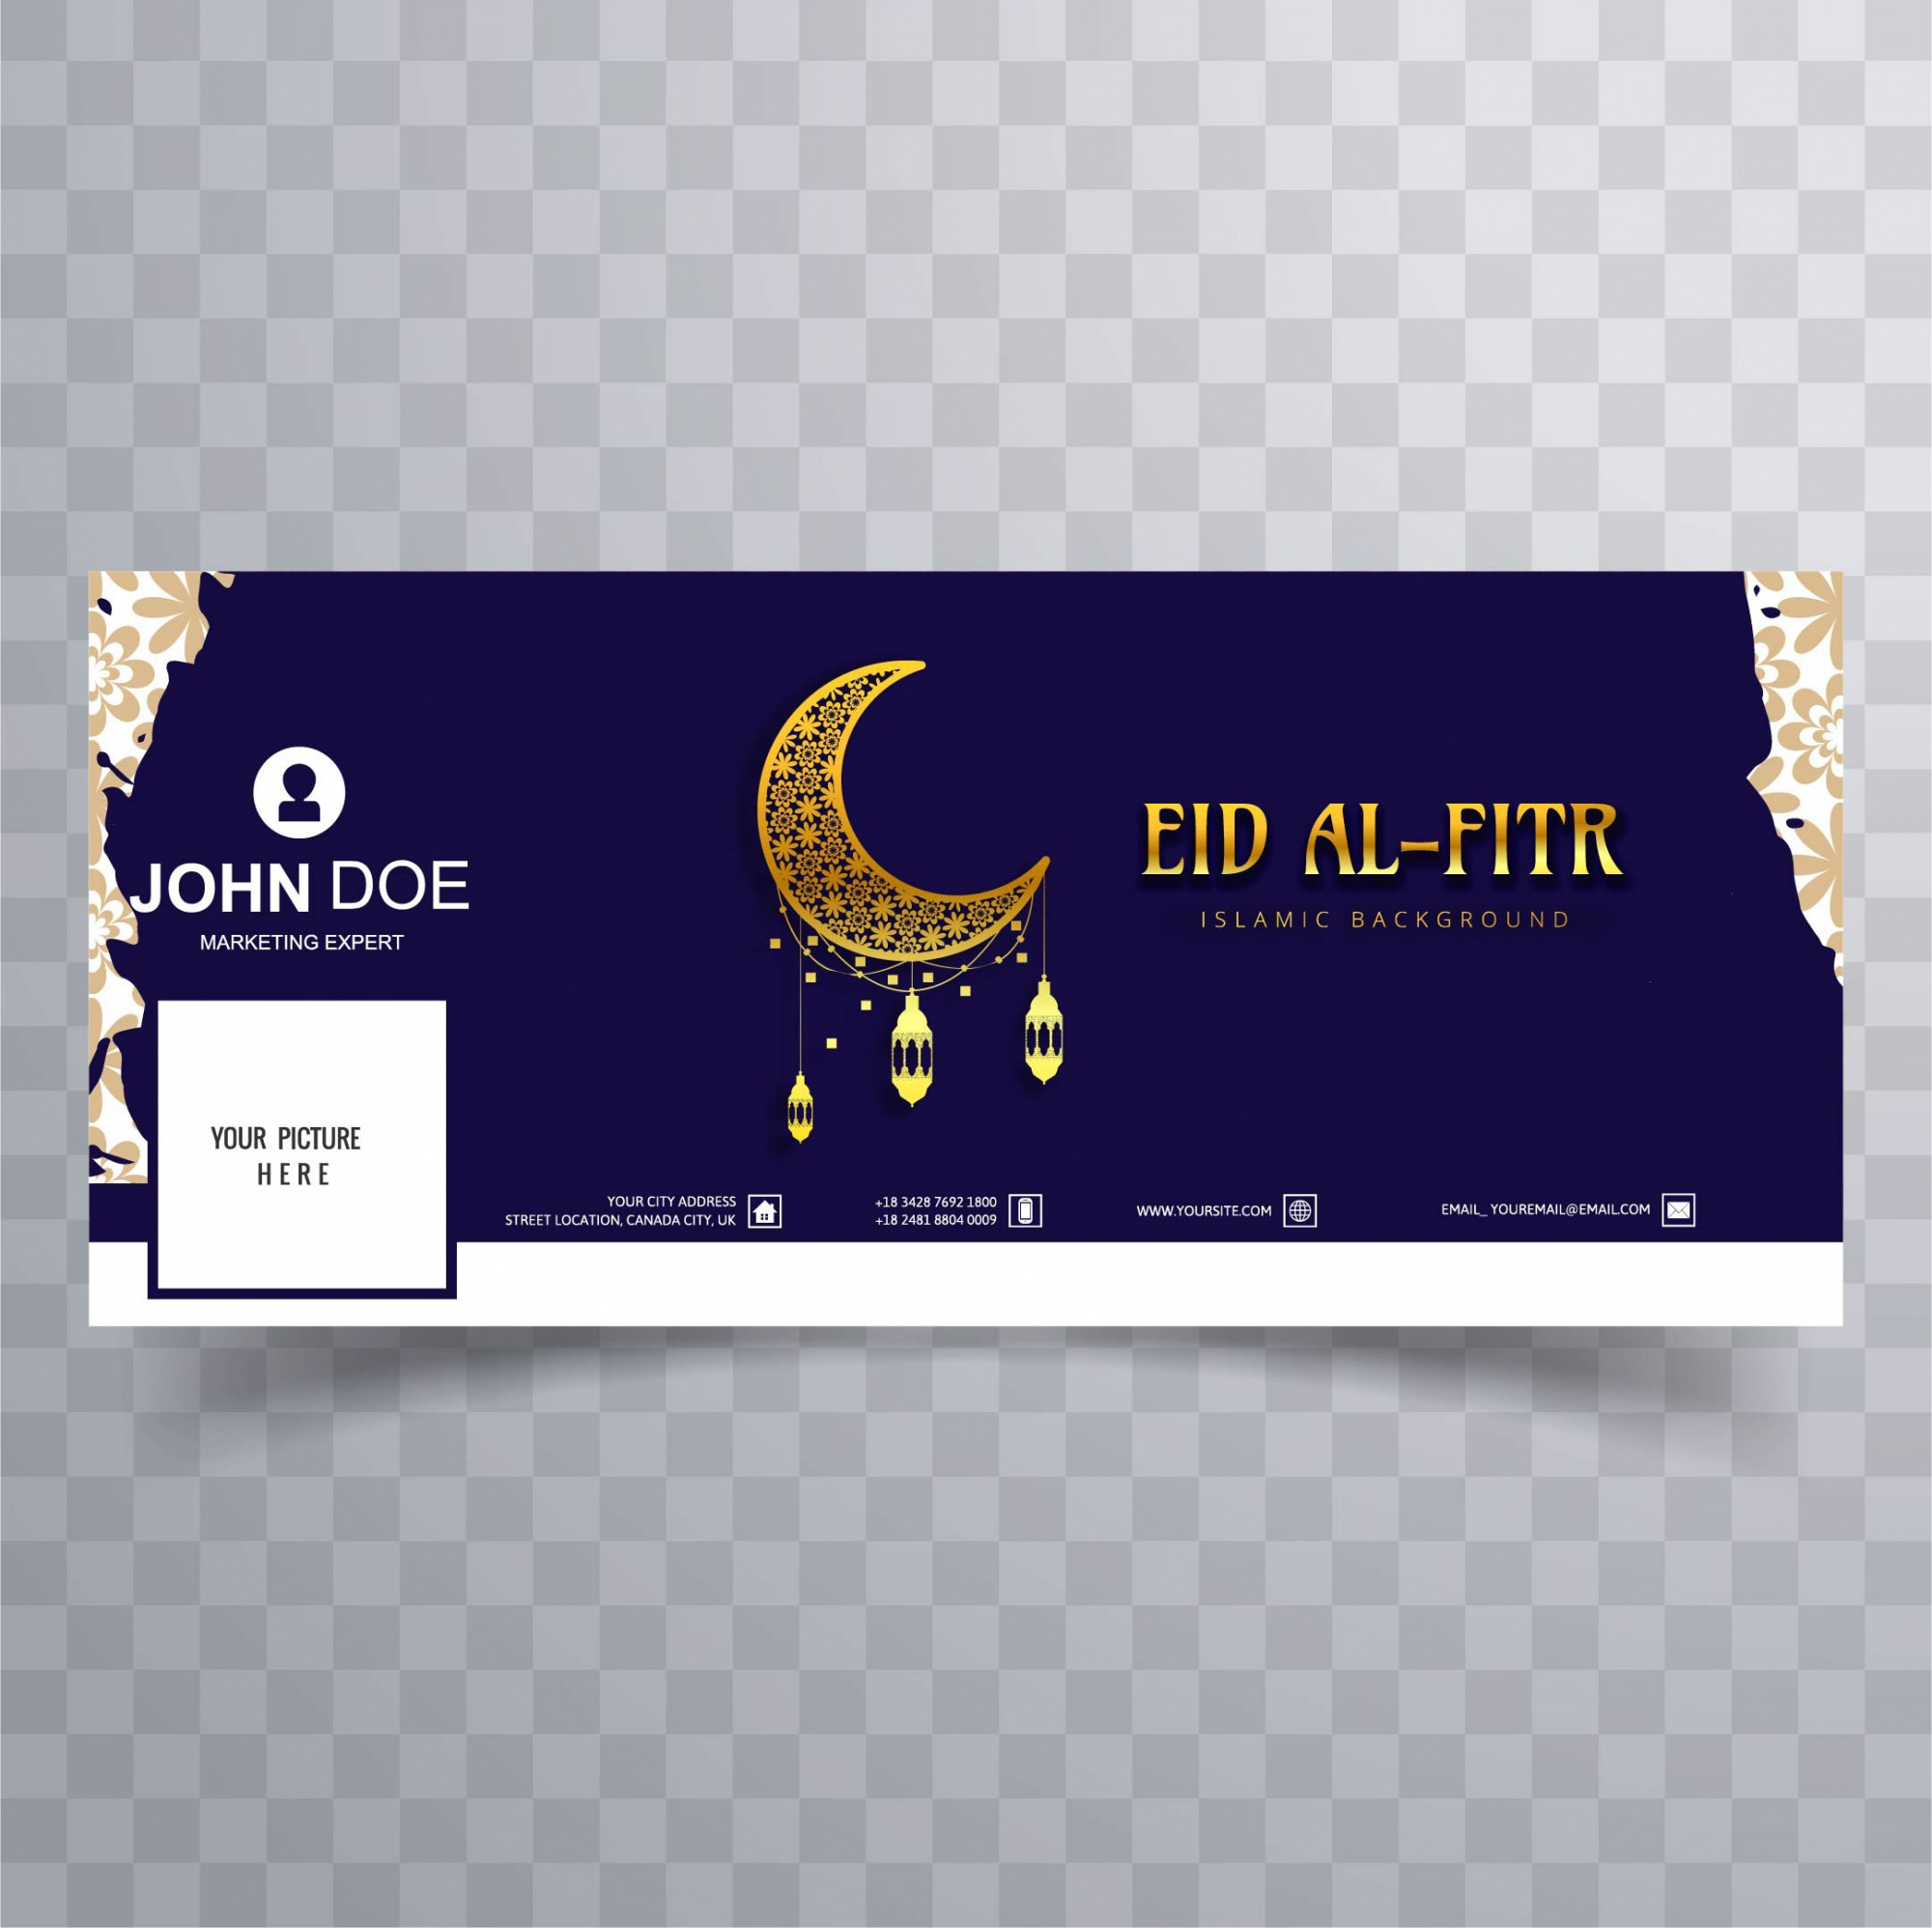 Eid Al Fitrのfacebook cover